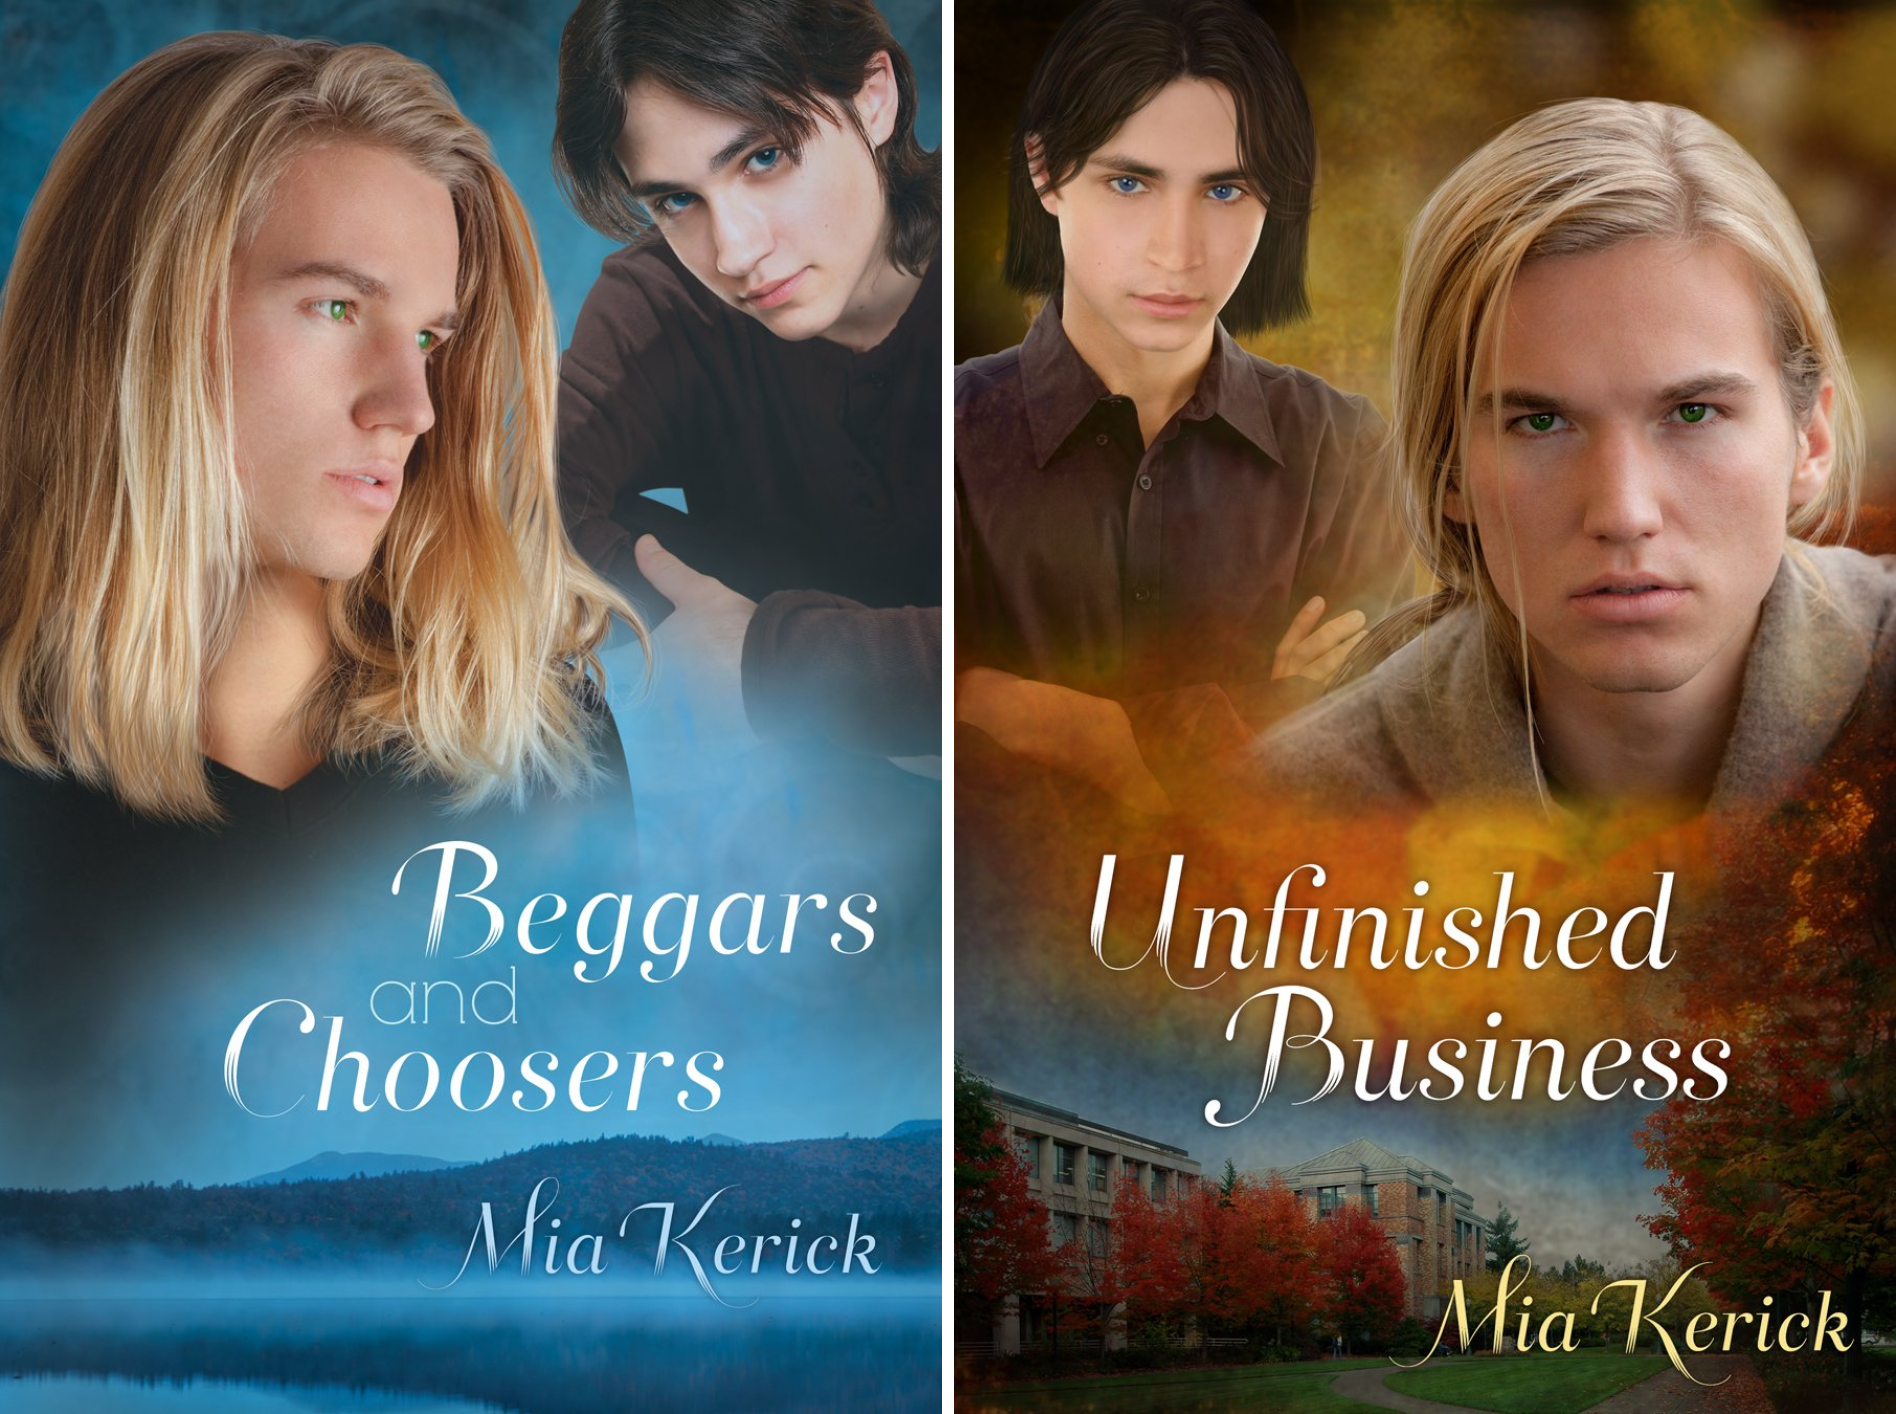 Beggars and Choosers and Unfinished Business (2 Book Series)